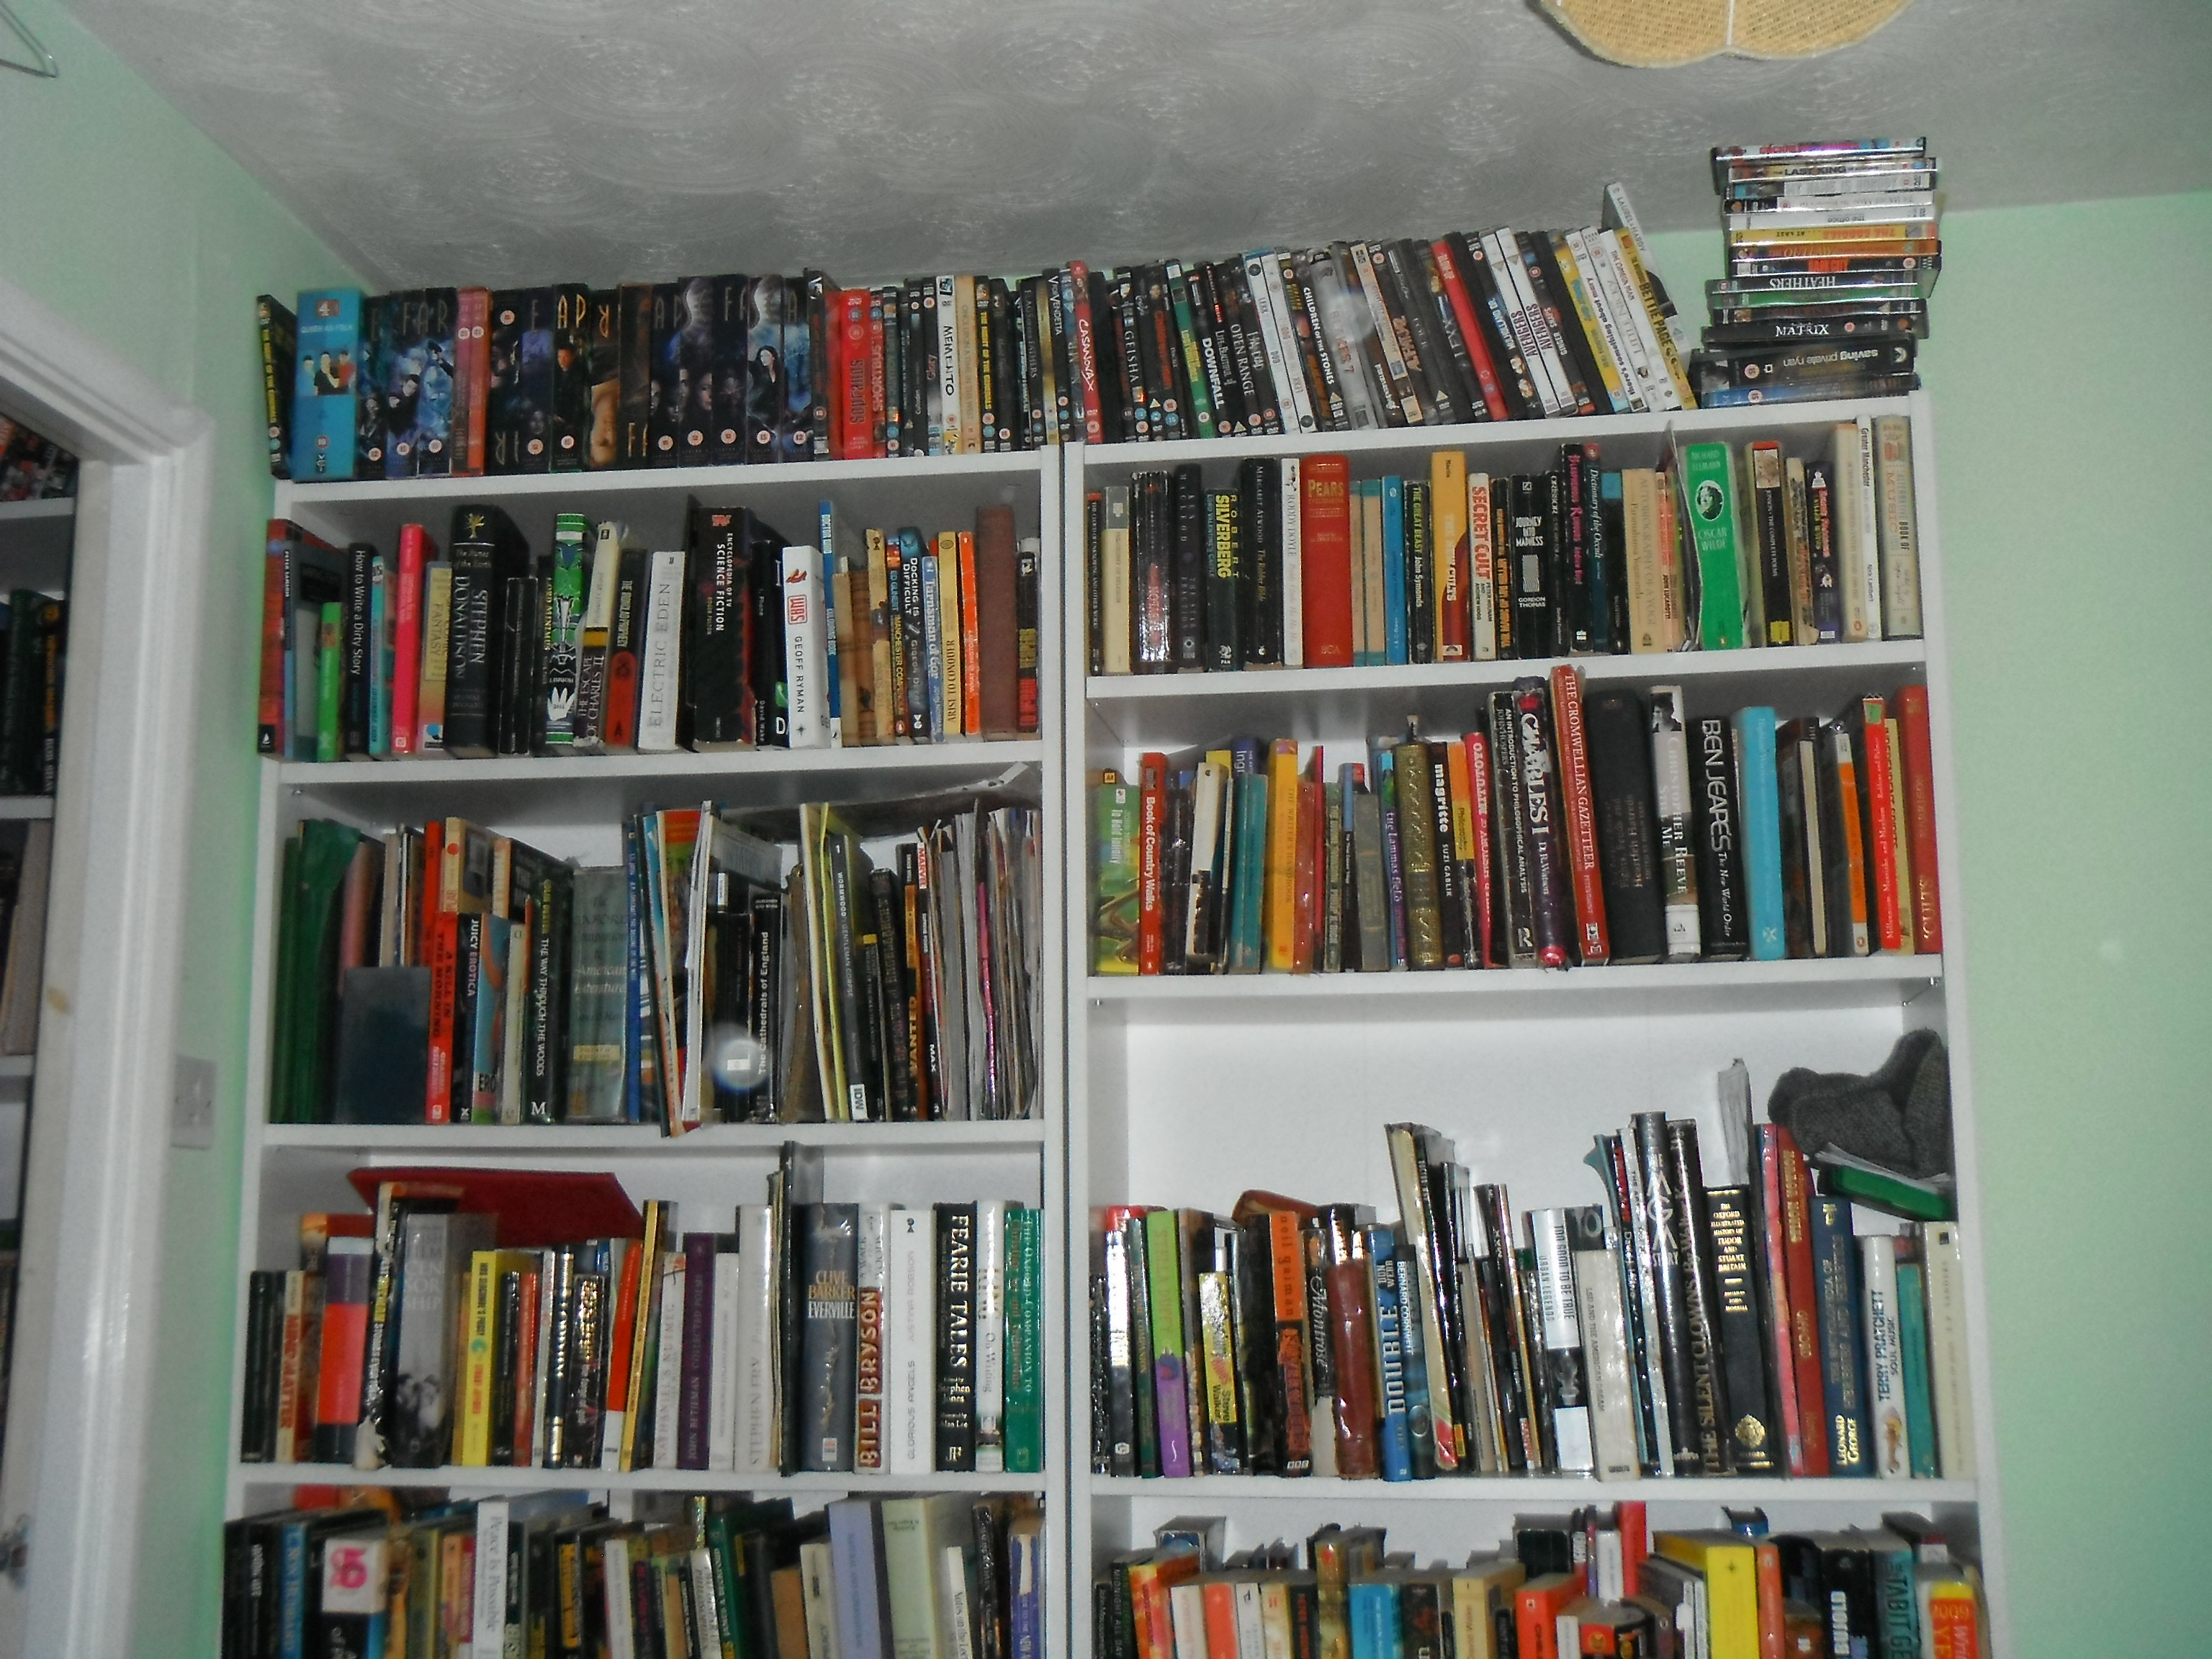 photo taken by me - my book cases